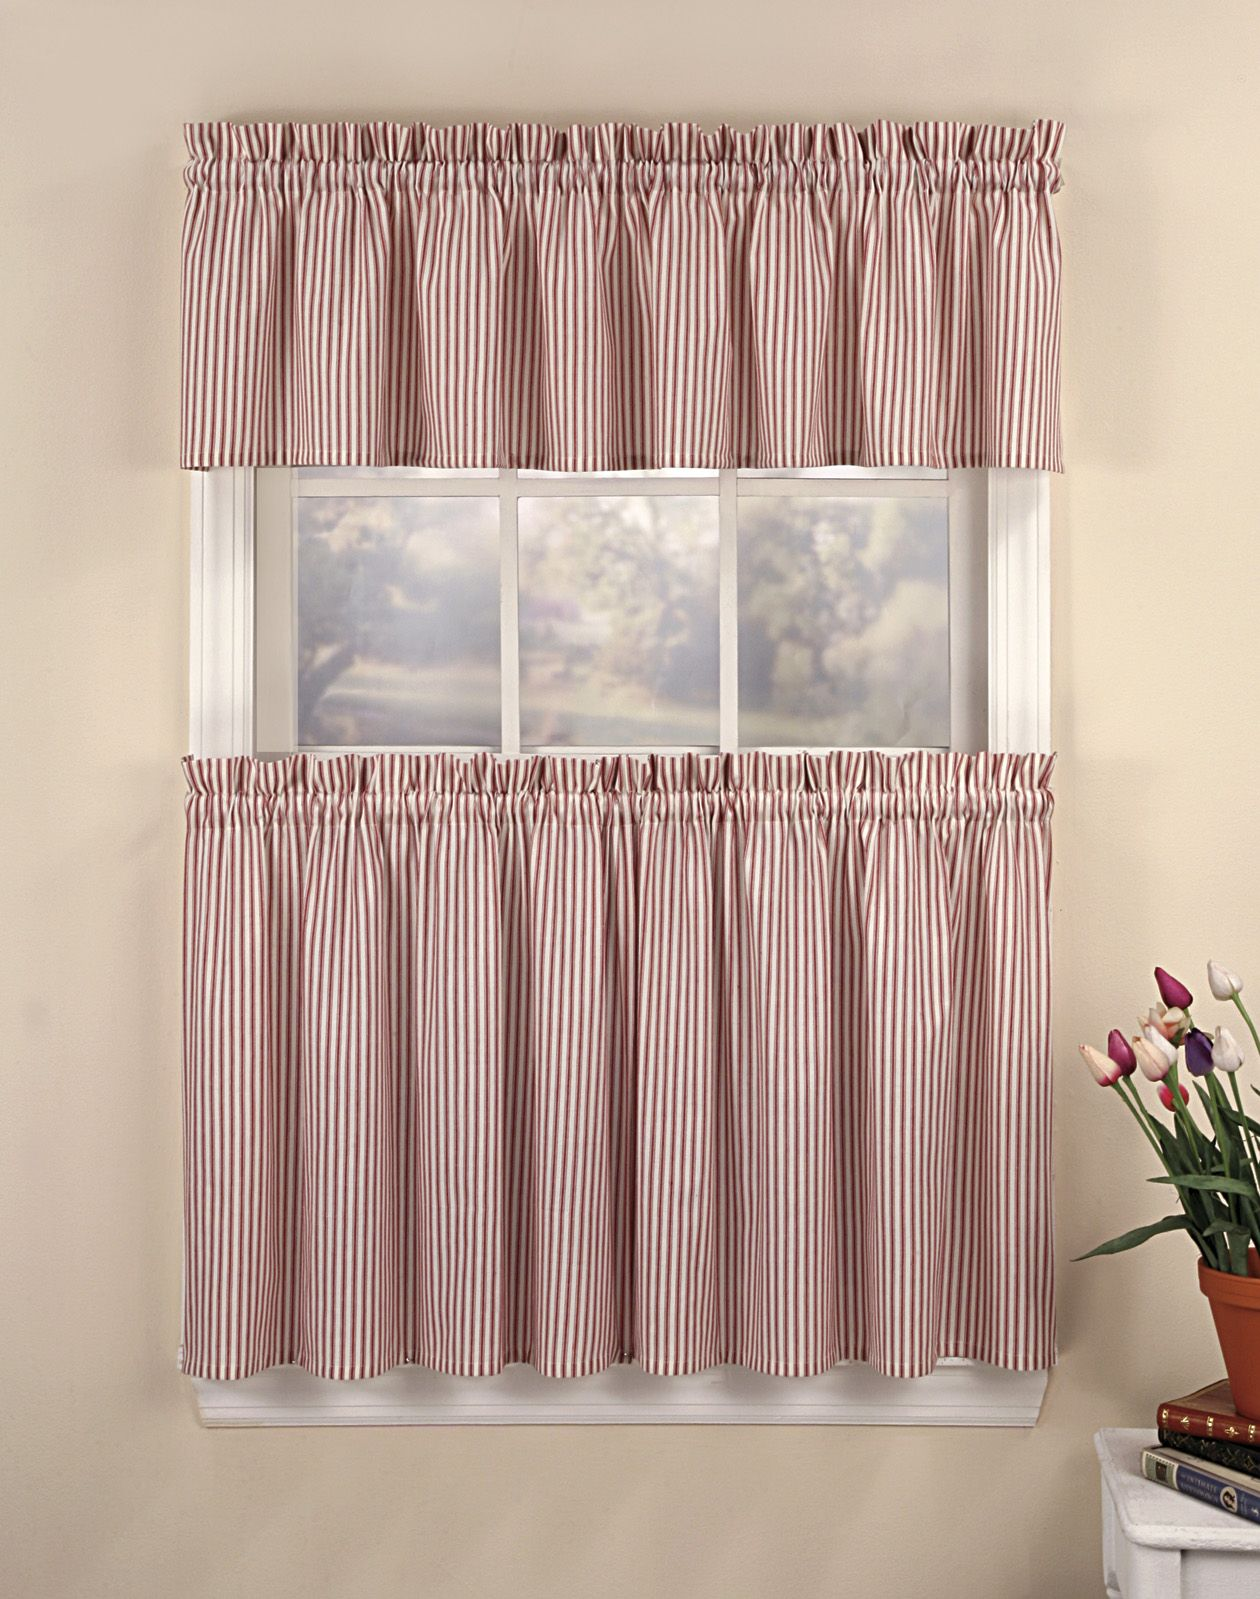 High Quality Kitchen Cafe Curtains Ticking Stripe Kitchen Curtain Tier Inspiration And  Design Ideas For Dream House Striped Cafe Kitchen Curtains Making Kitchen  Cafe ...